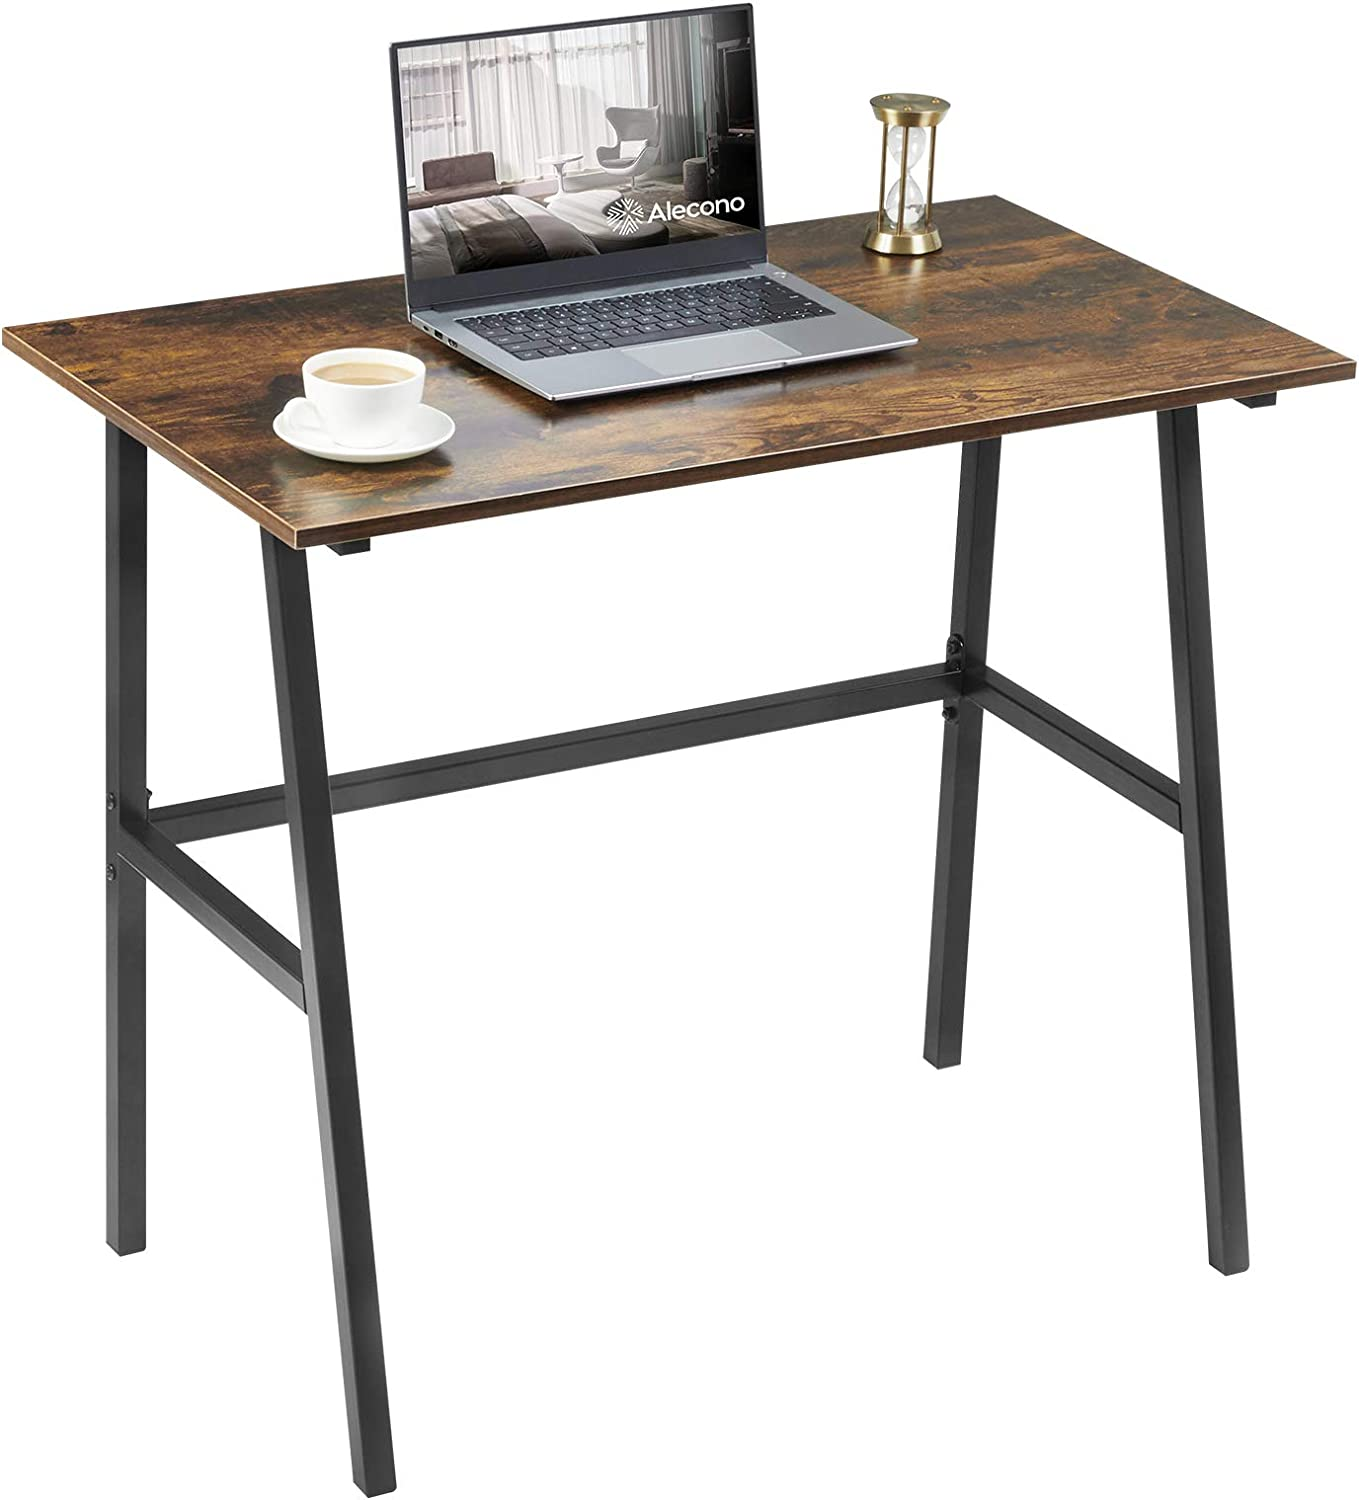 Small Computer Desk 35'' Study Writing Desk for Small Spaces Modern Simple Metal Frame Rustic Brown